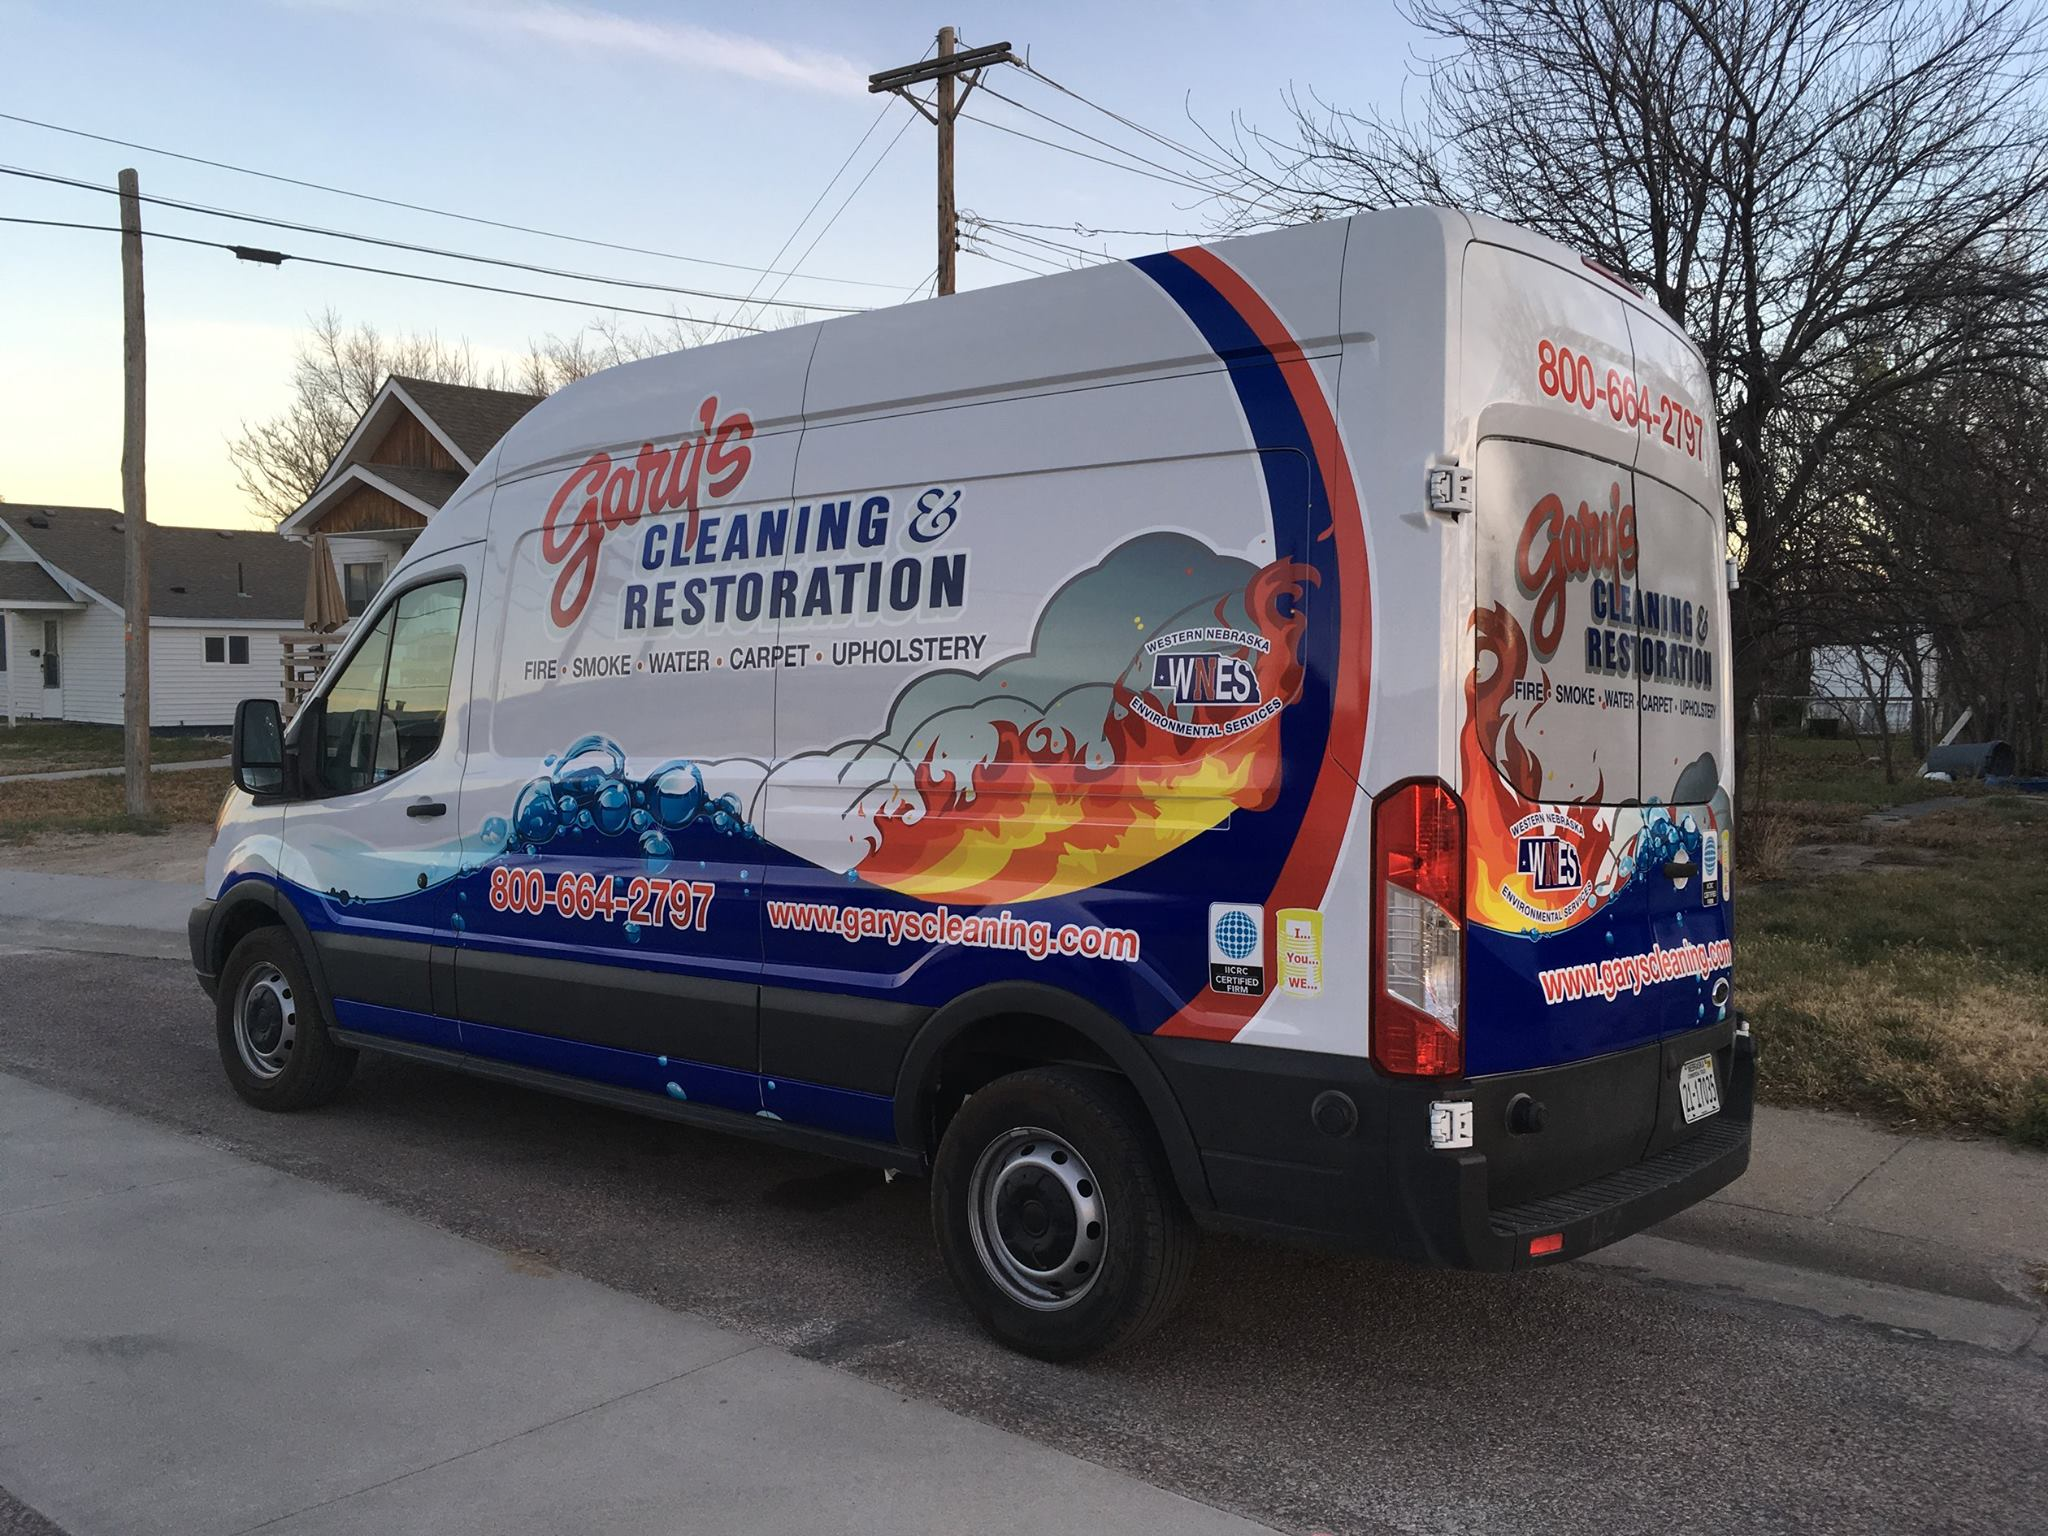 Gary's Cleaning & Restoration